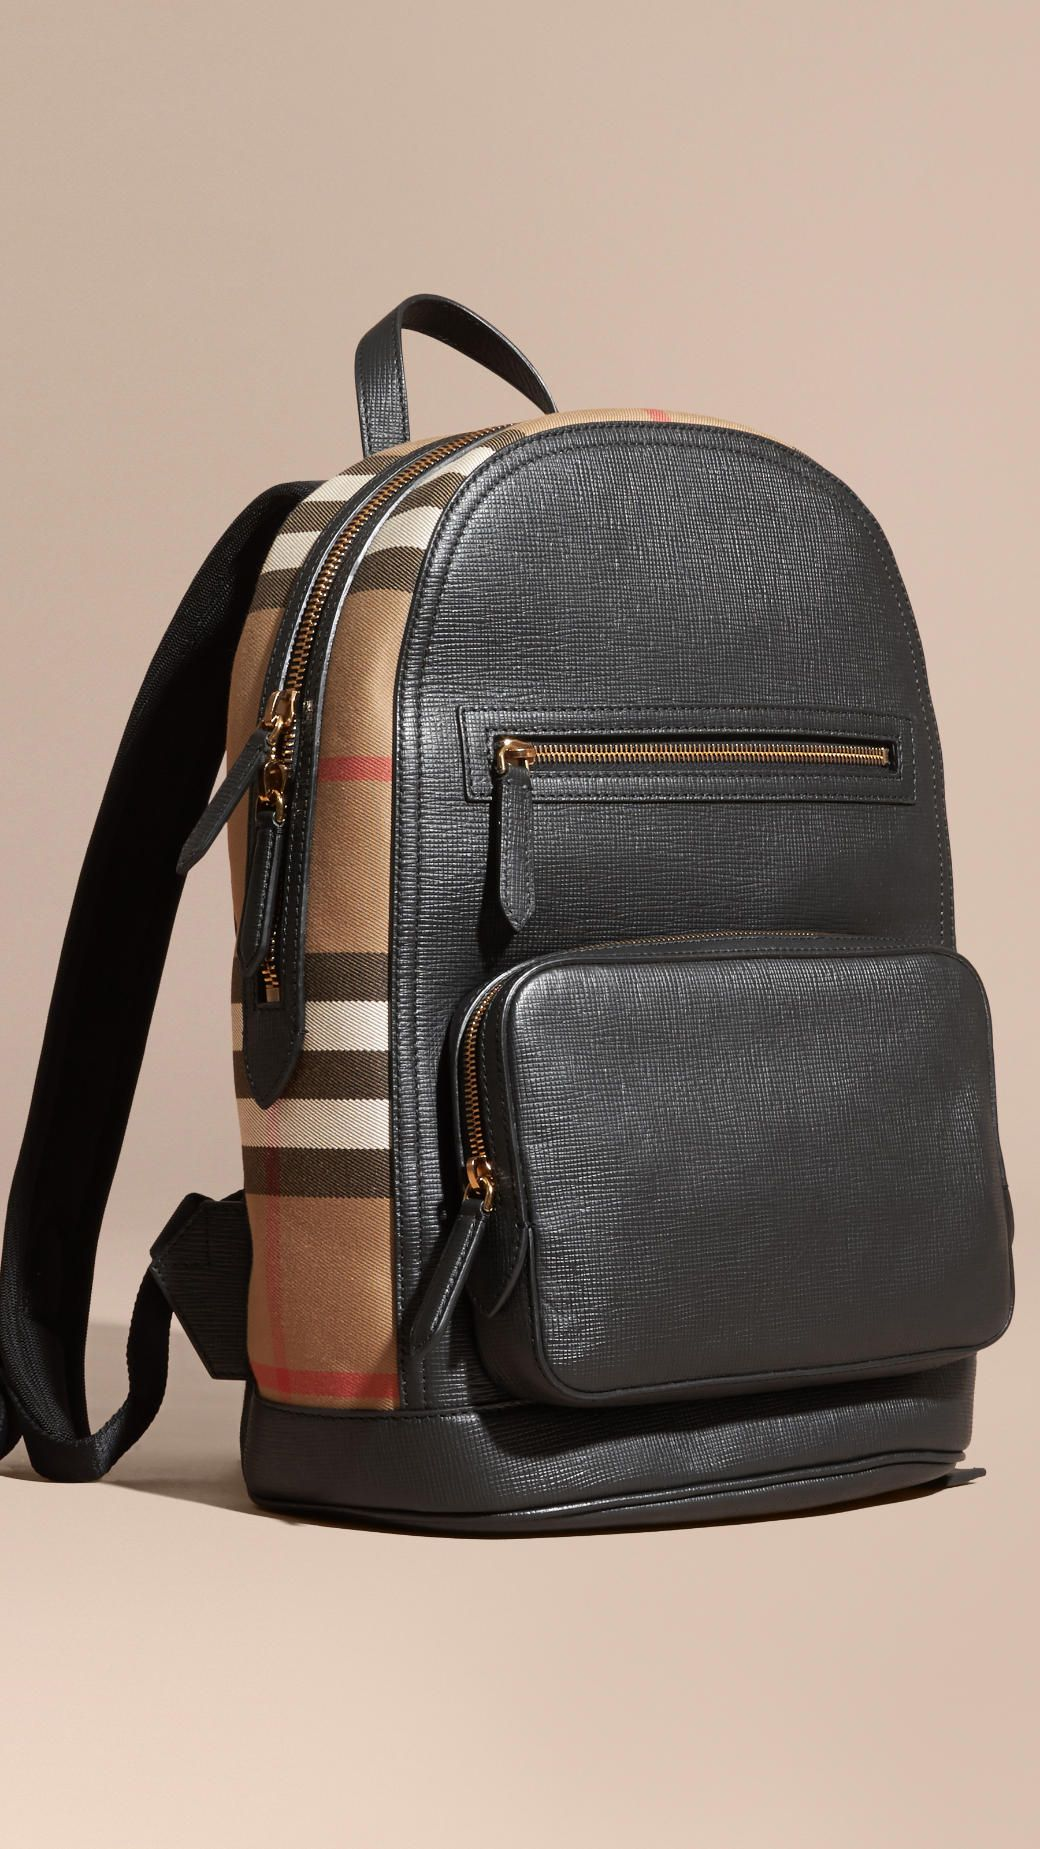 0ab40478f88e A backpack shaped in textured leather and English-woven House check.  Burberry